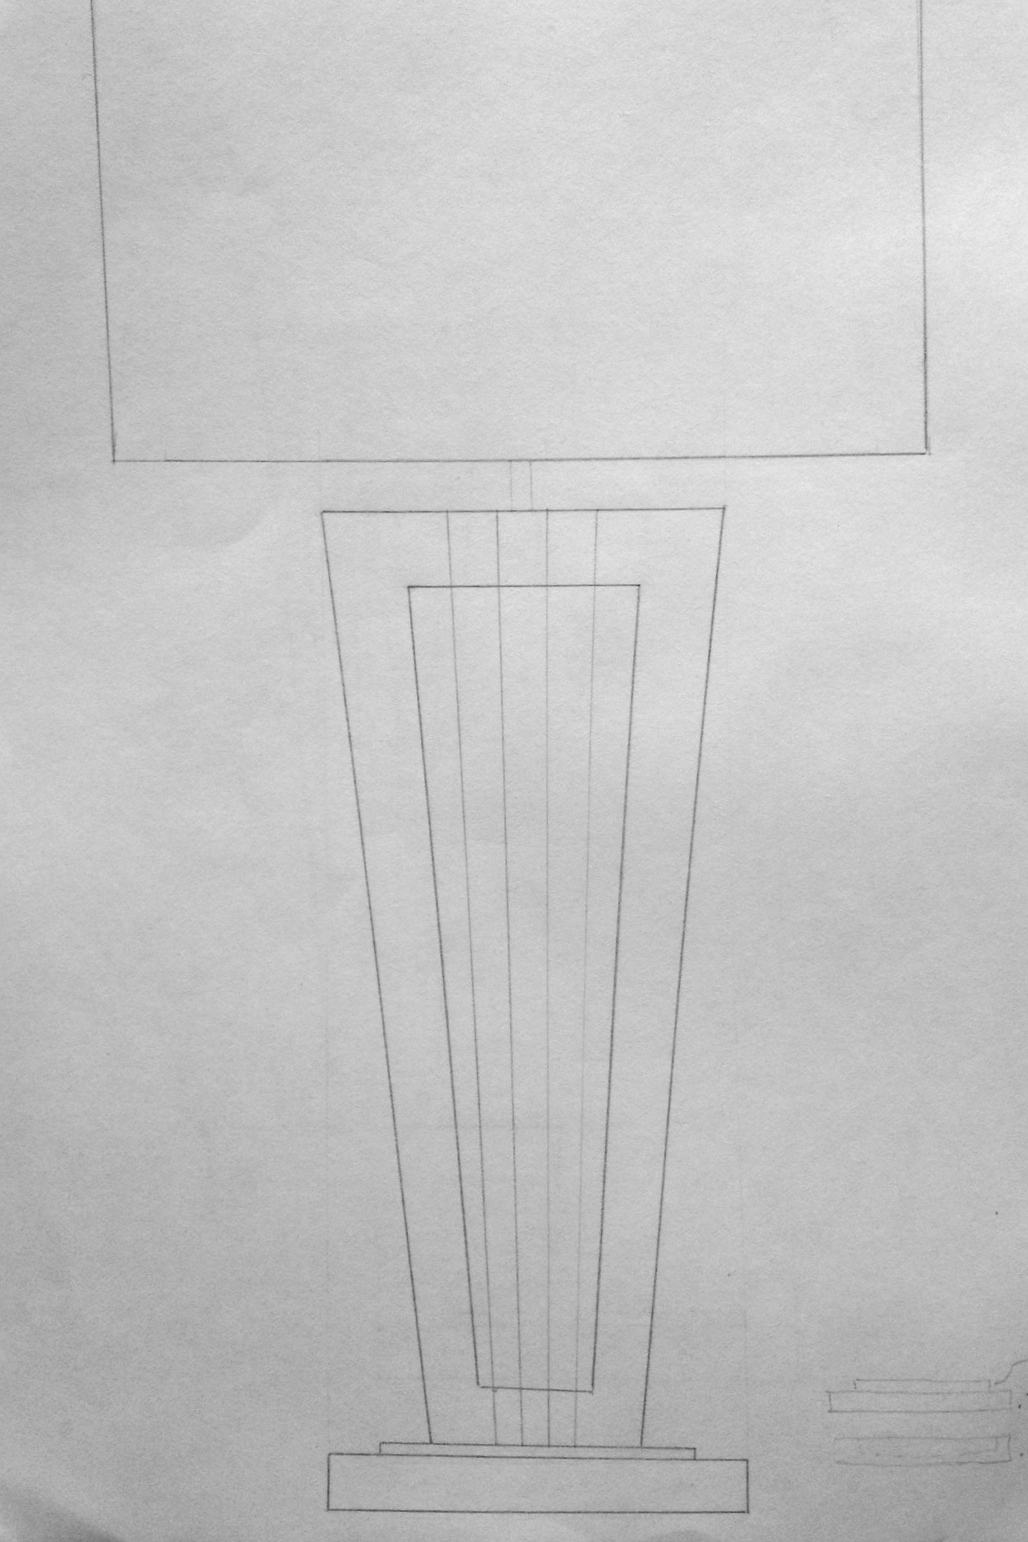 First concept sketch for Balance Table Lamp. The original design called for a large opening in the lamp's neck.